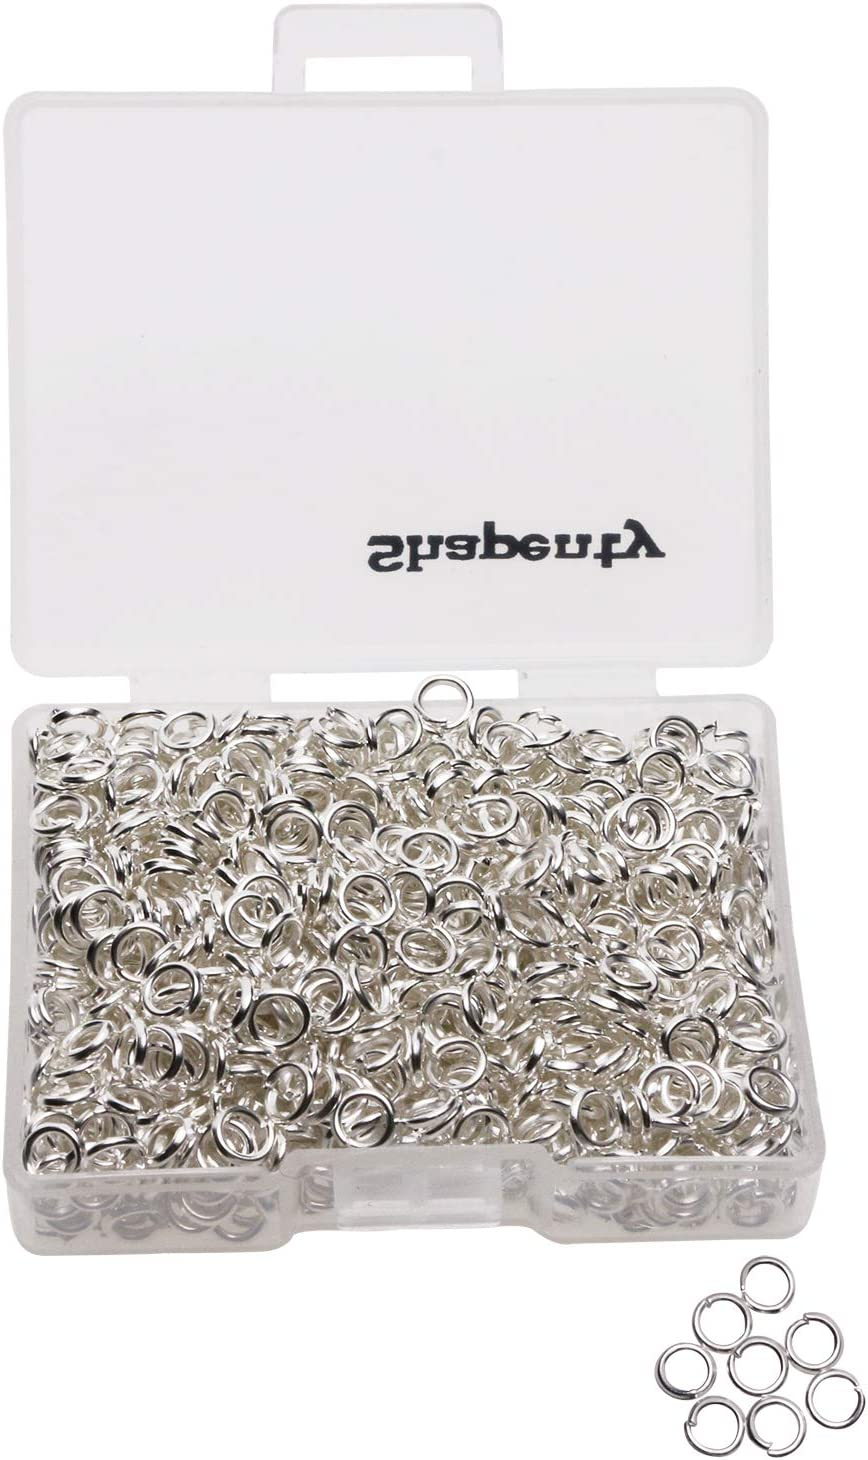 Shapenty 1000PCS Silver Plated Iron Jump Open B Max 71% OFF Connectors Rings latest